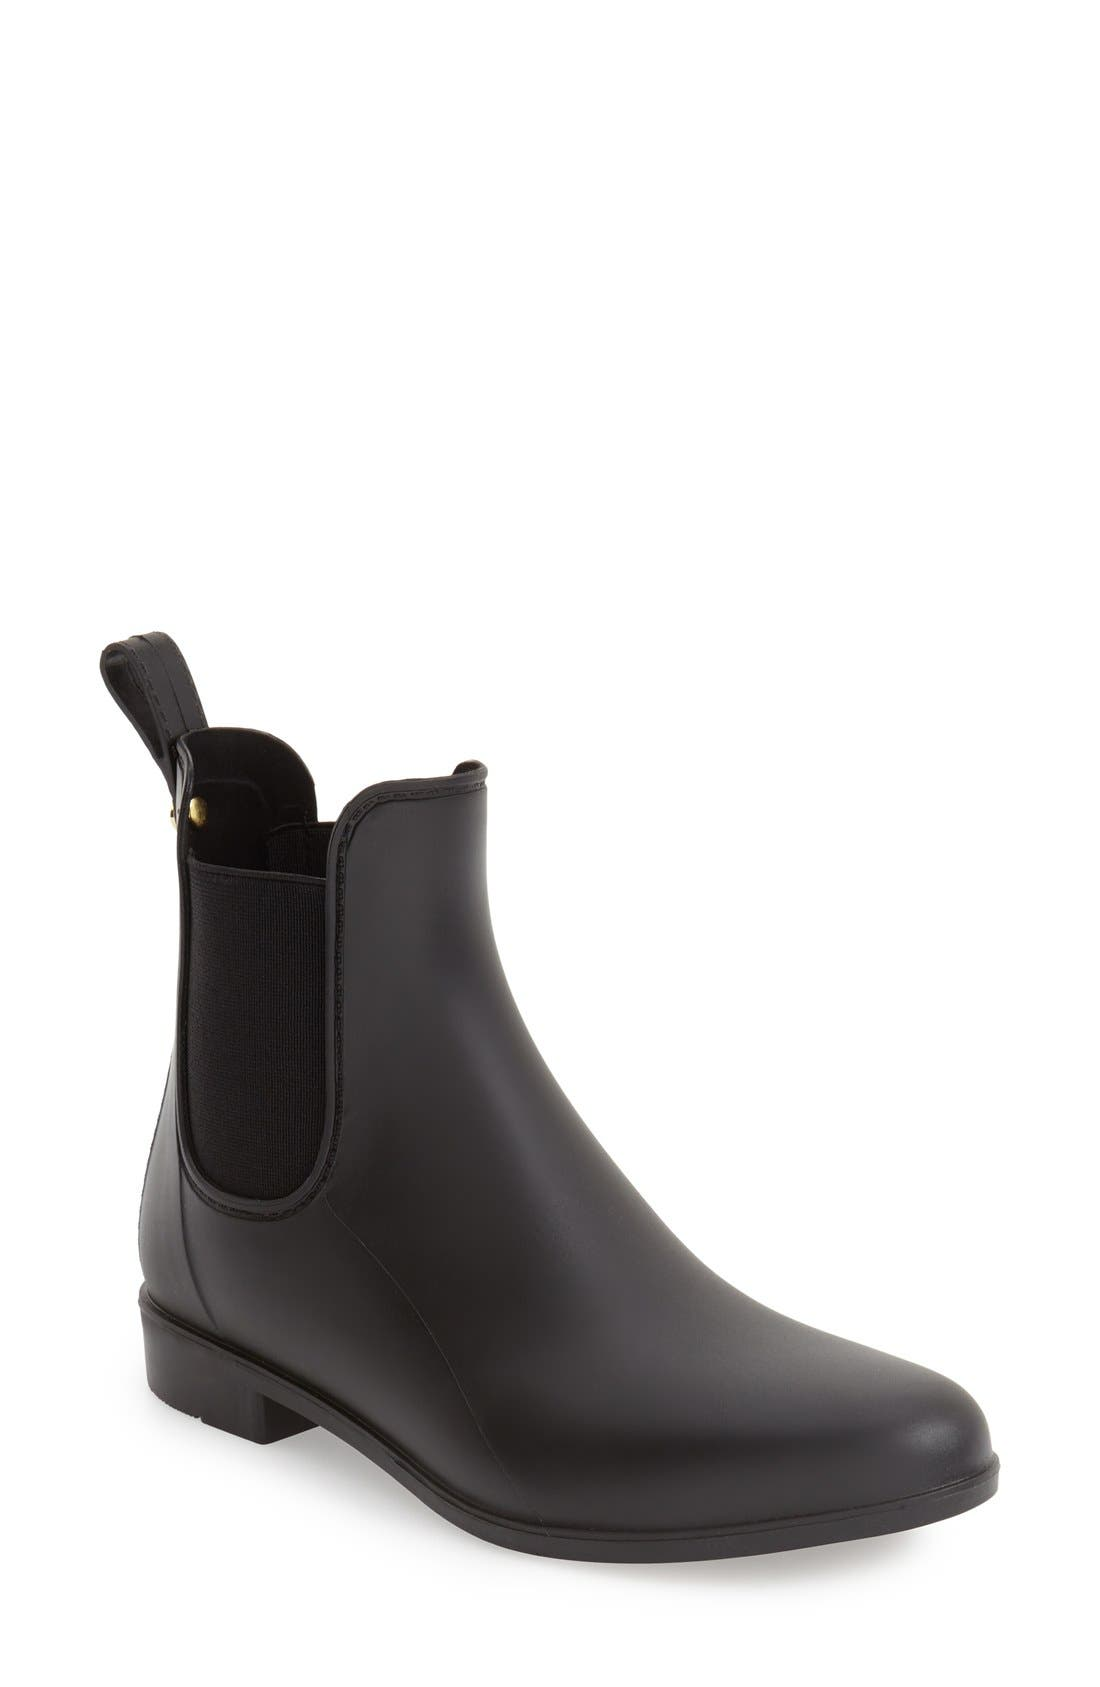 Alternate Image 1 Selected - Sam Edelman 'Tinsley' Rain Boot (Women)